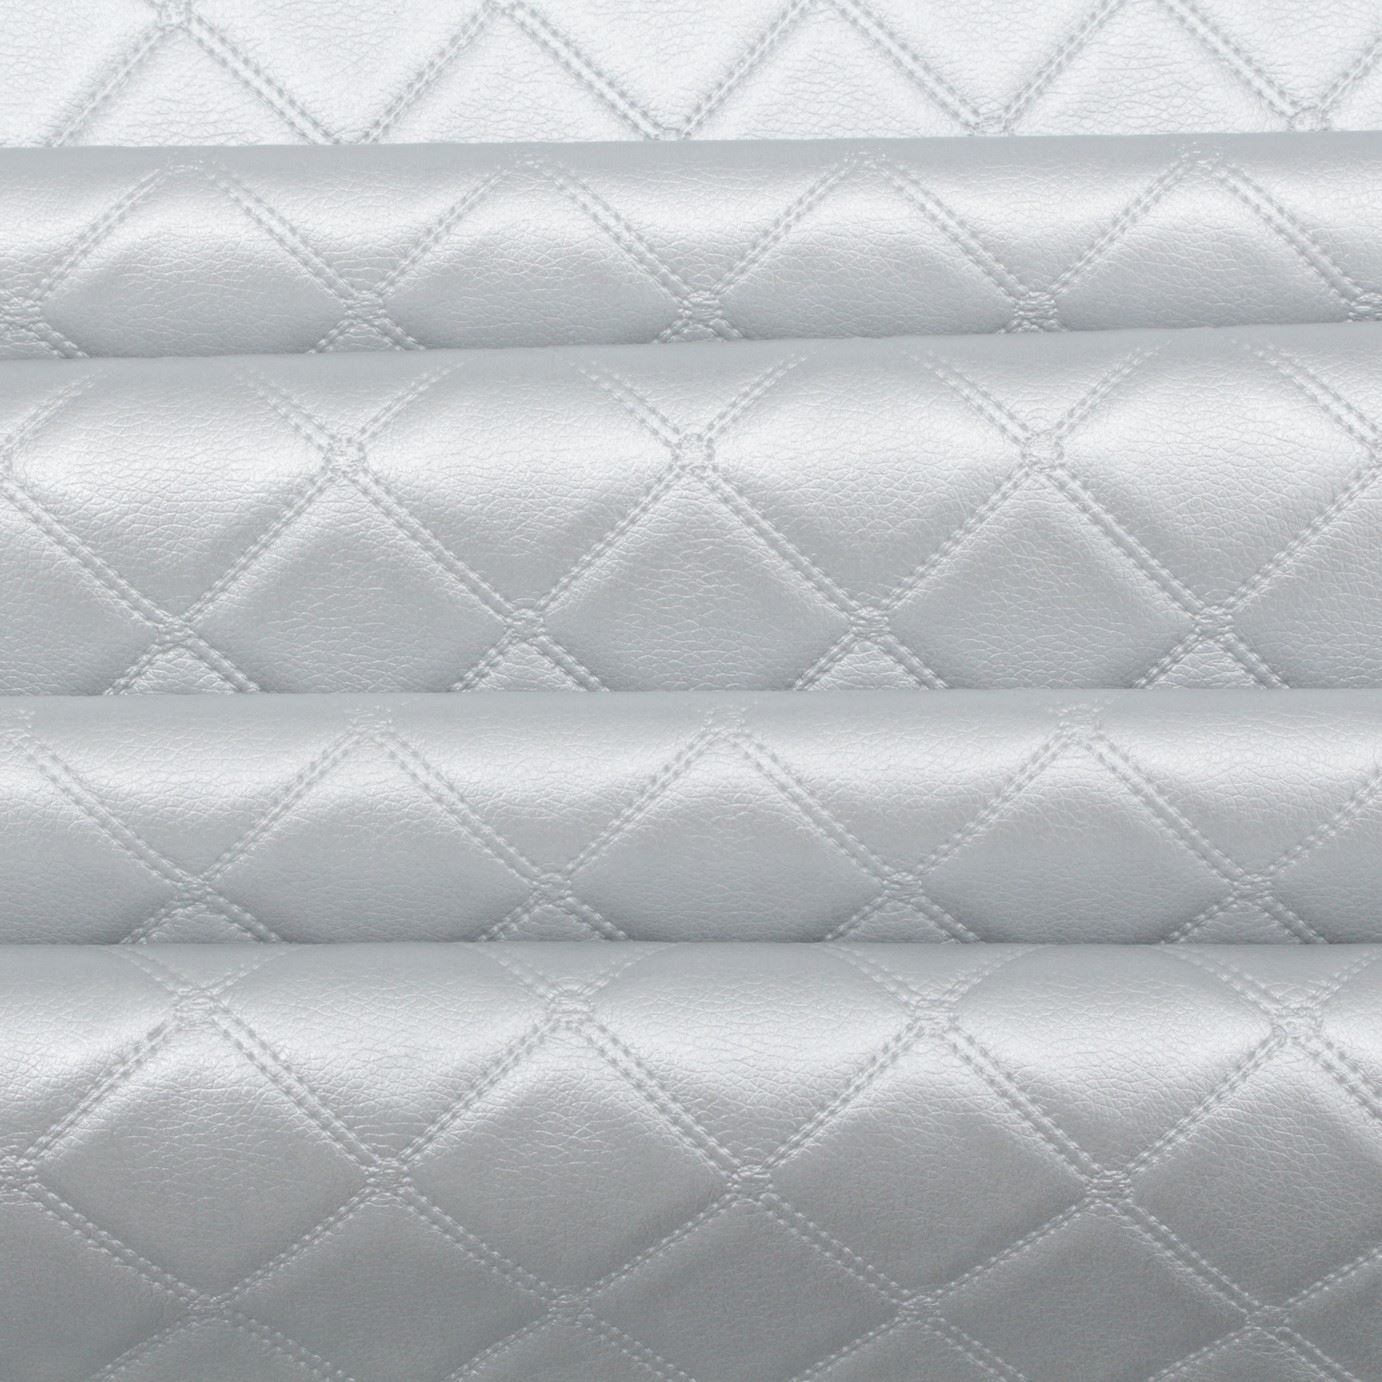 Car White Stitching Diamond Quilted Black Faux Leather Upholstery Fabric 1MX1.5M